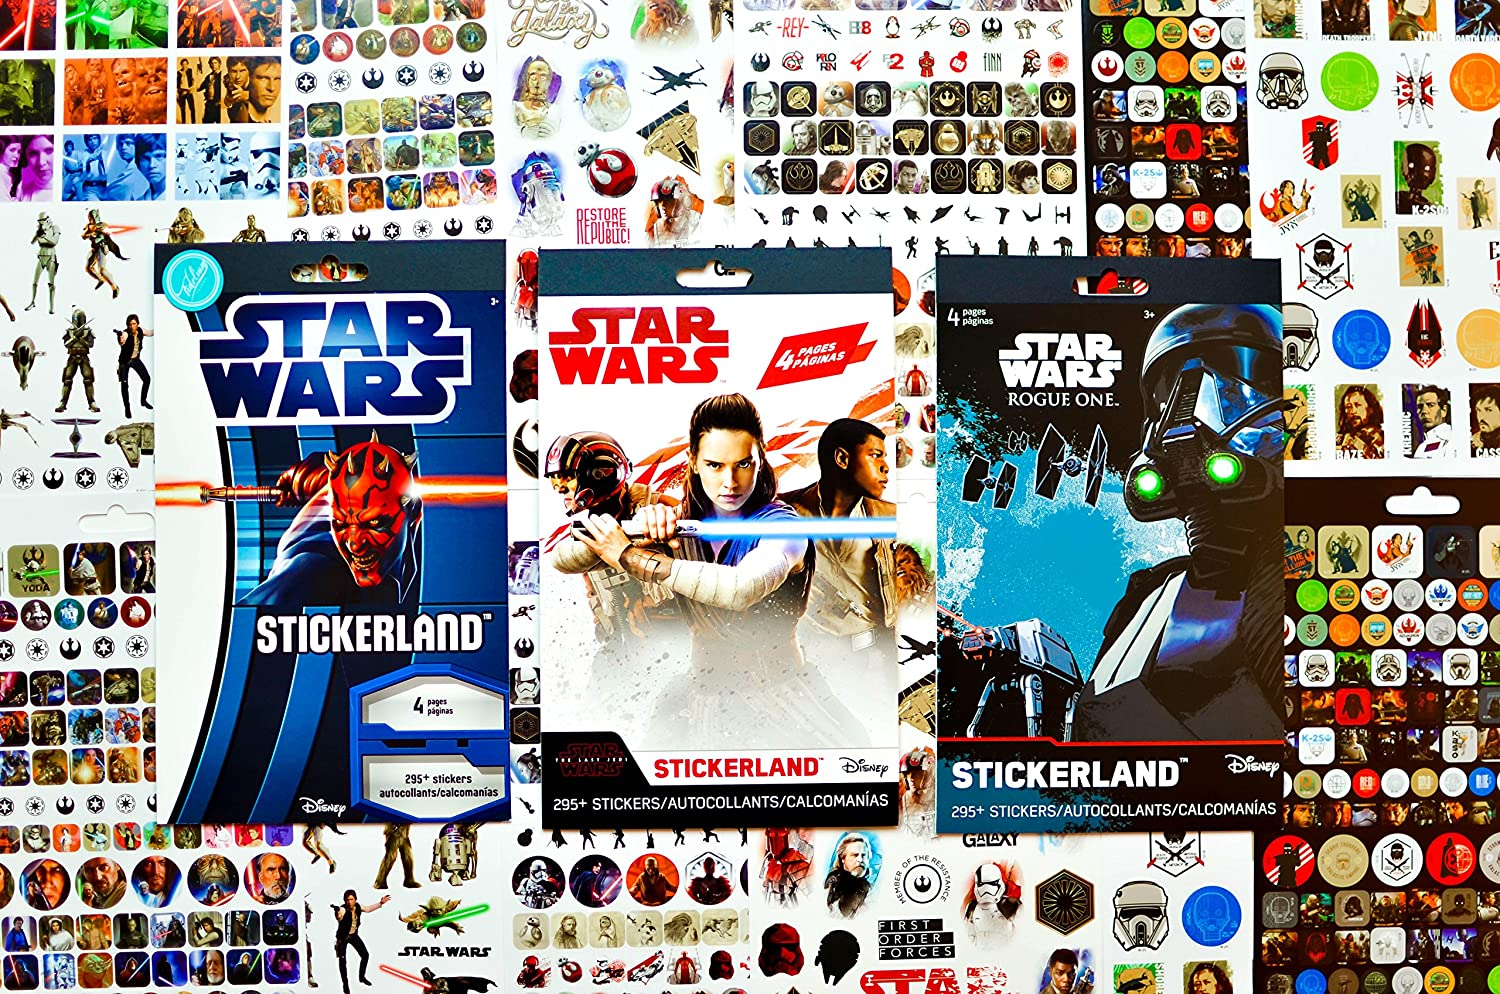 Star Wars Stickers Variety Pack 900 Stickers Featuring Your Favorite Star Wars Characters 12 Sticker Sheets Perfect for Star Wars Party Favors